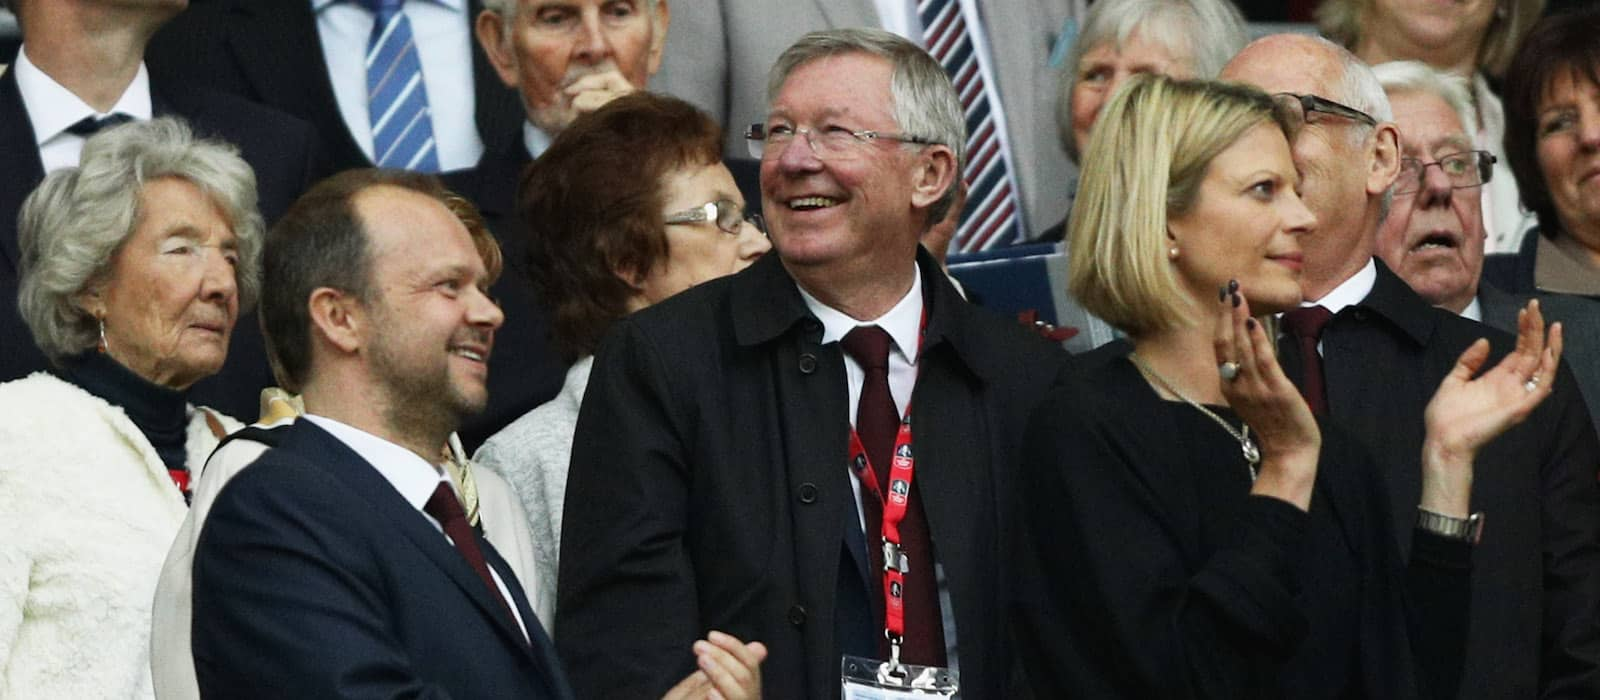 Source: Sir Alex Ferguson will be back at Old Trafford soon